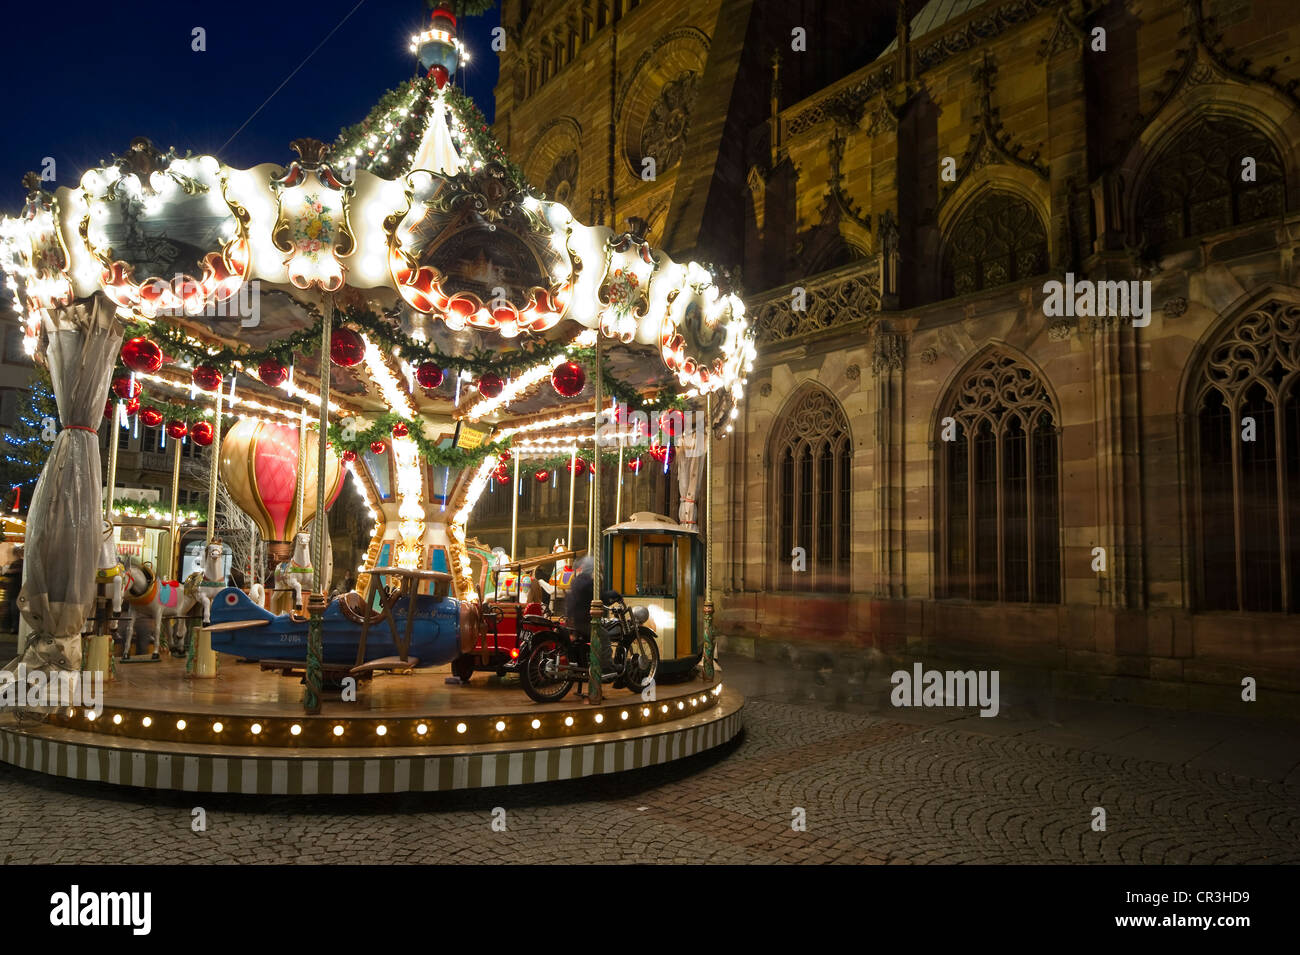 carousel christmas market in strasbourg alsace france europe stock image - Christmas Carousel Decoration